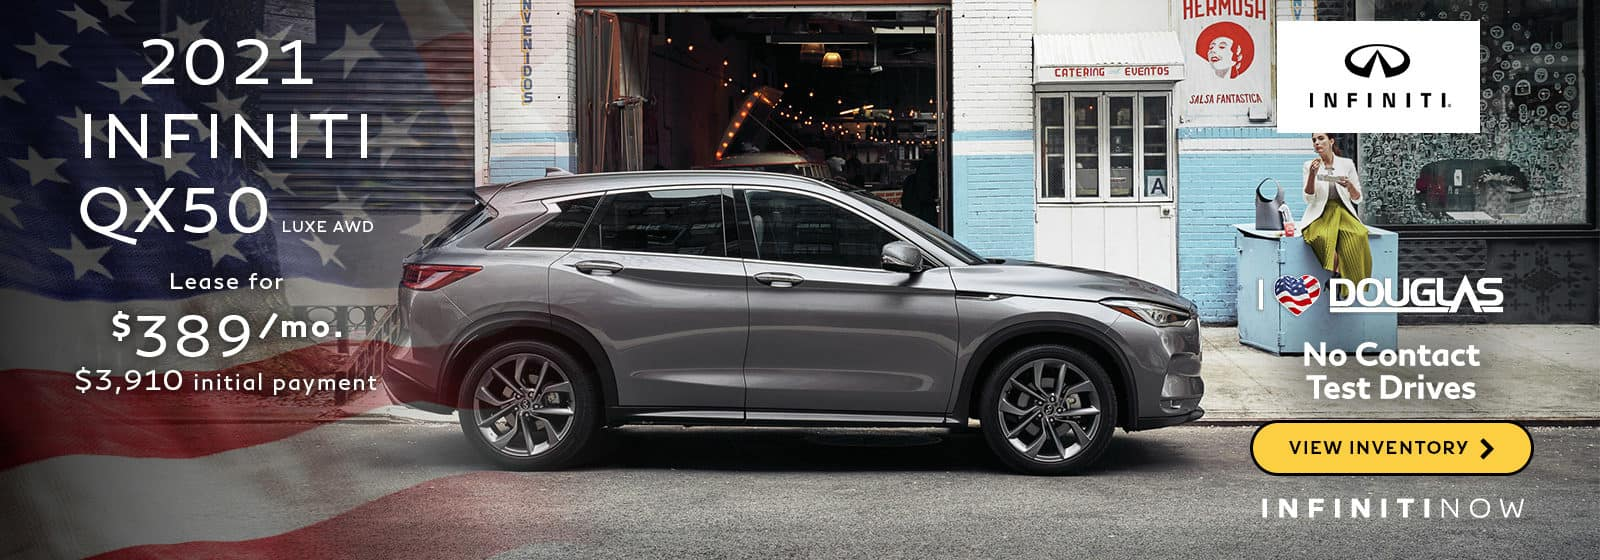 QX50 May Offer